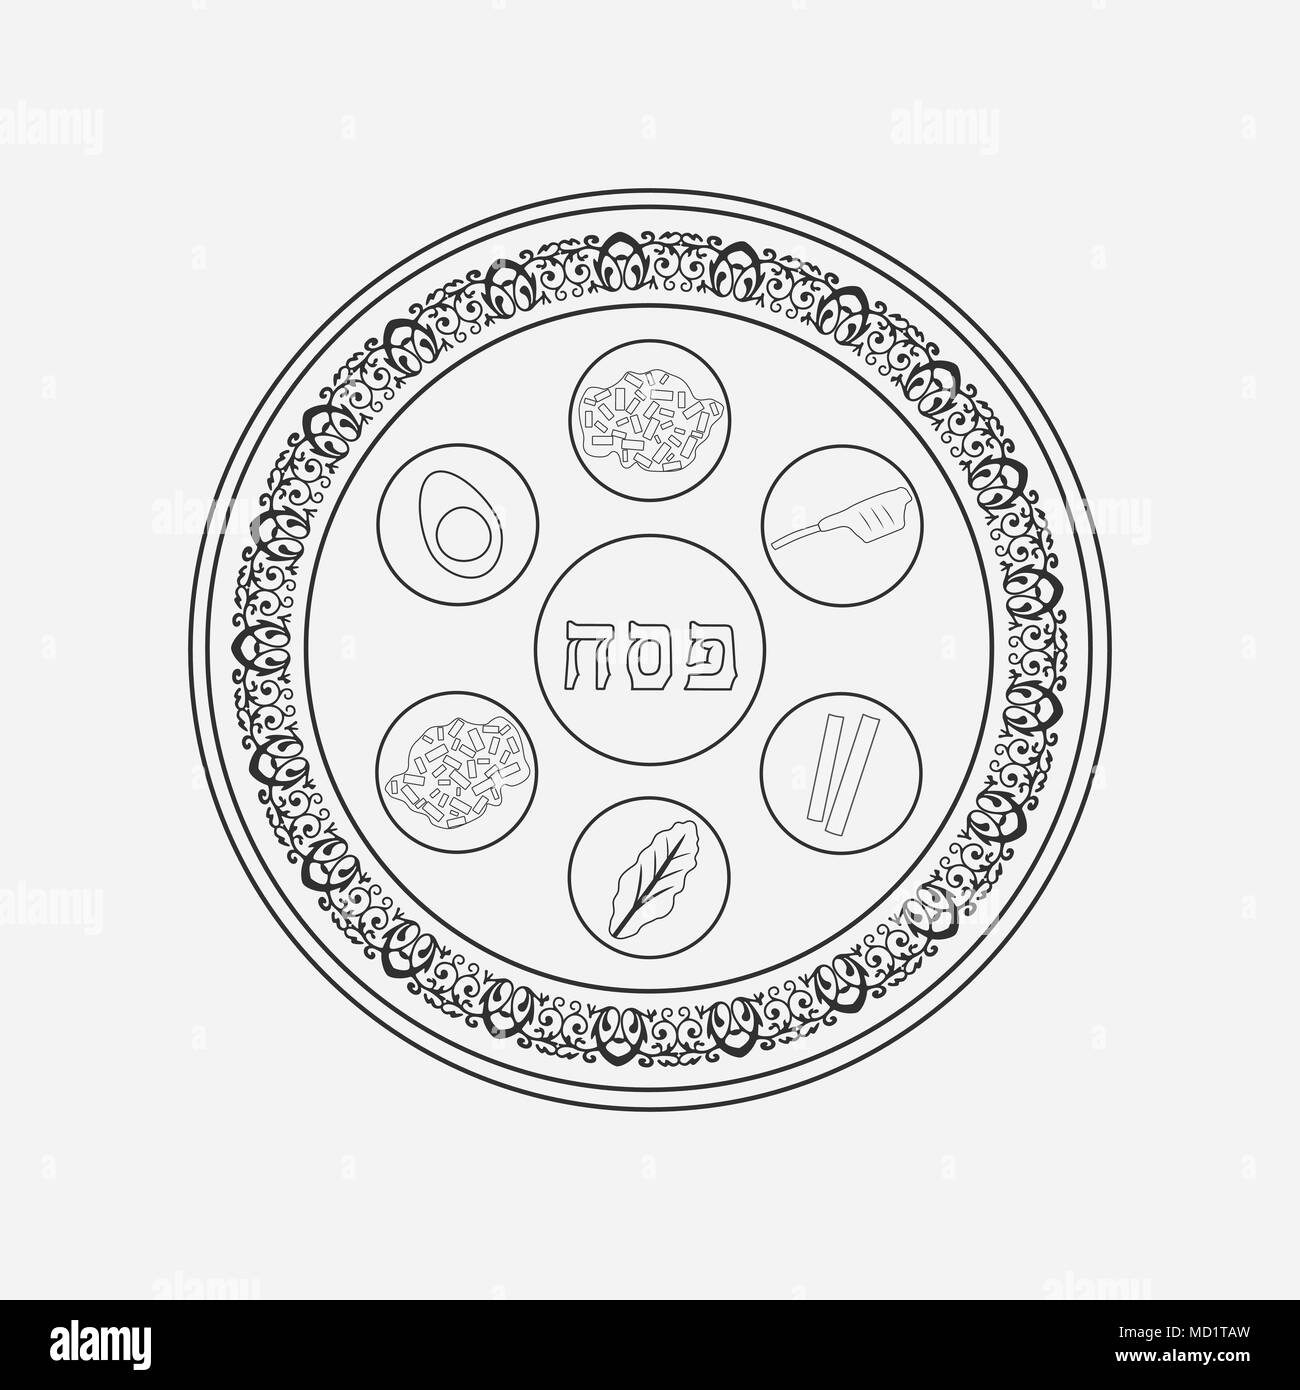 Passover Holiday Seder Plate Flat Black Outline Design Icon Stock